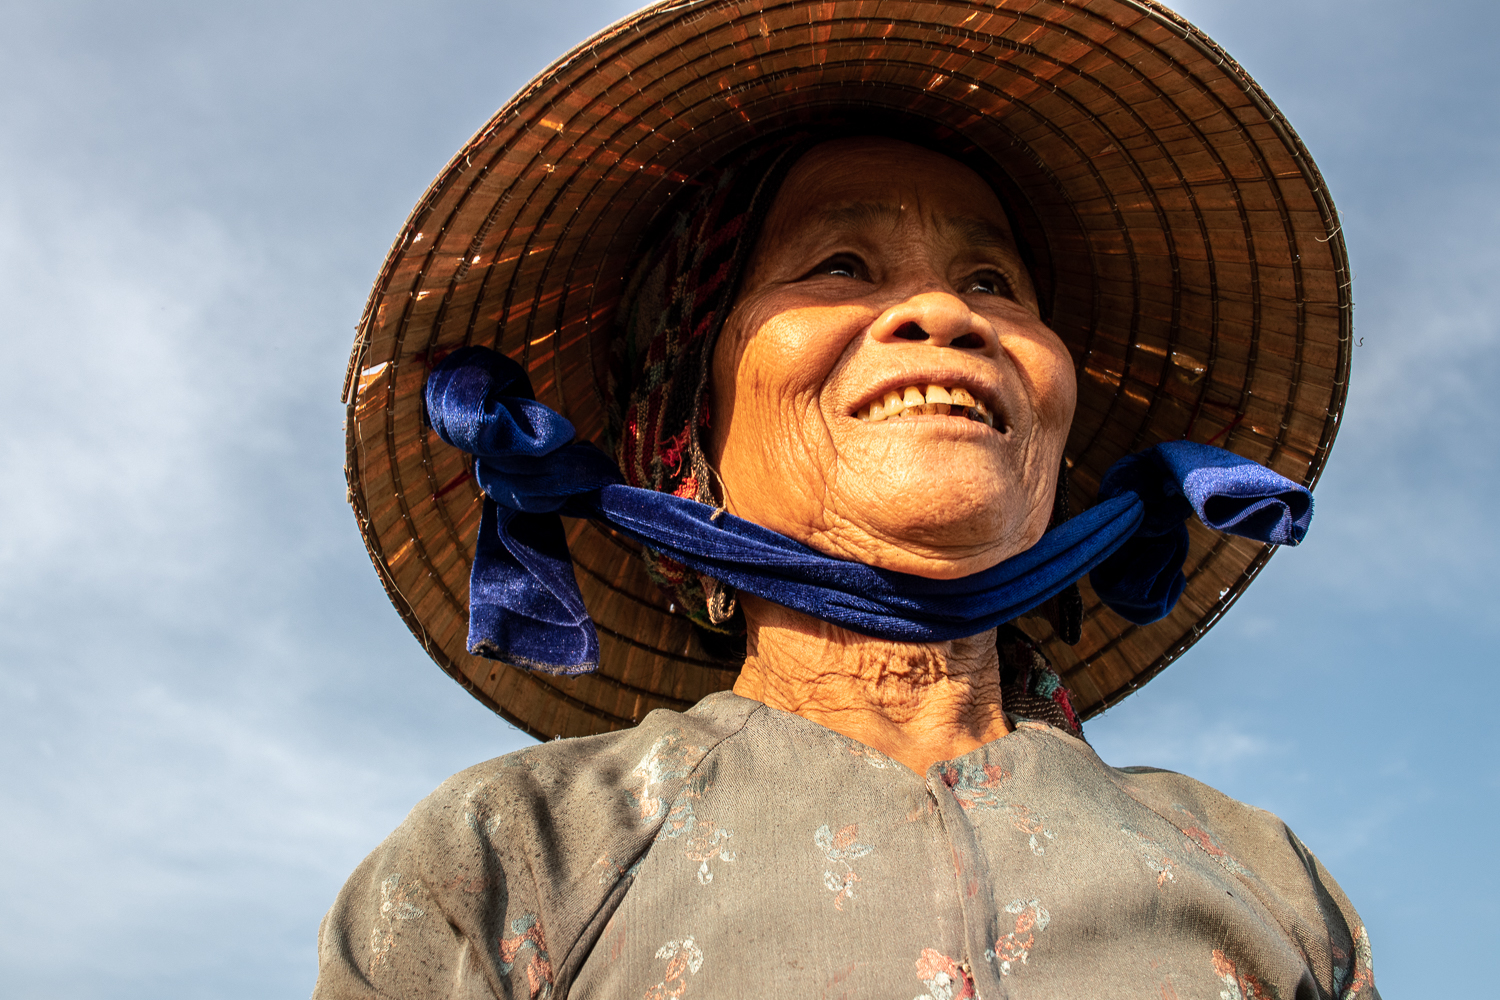 A beautiful Vietnamese farmer in a conical hat.